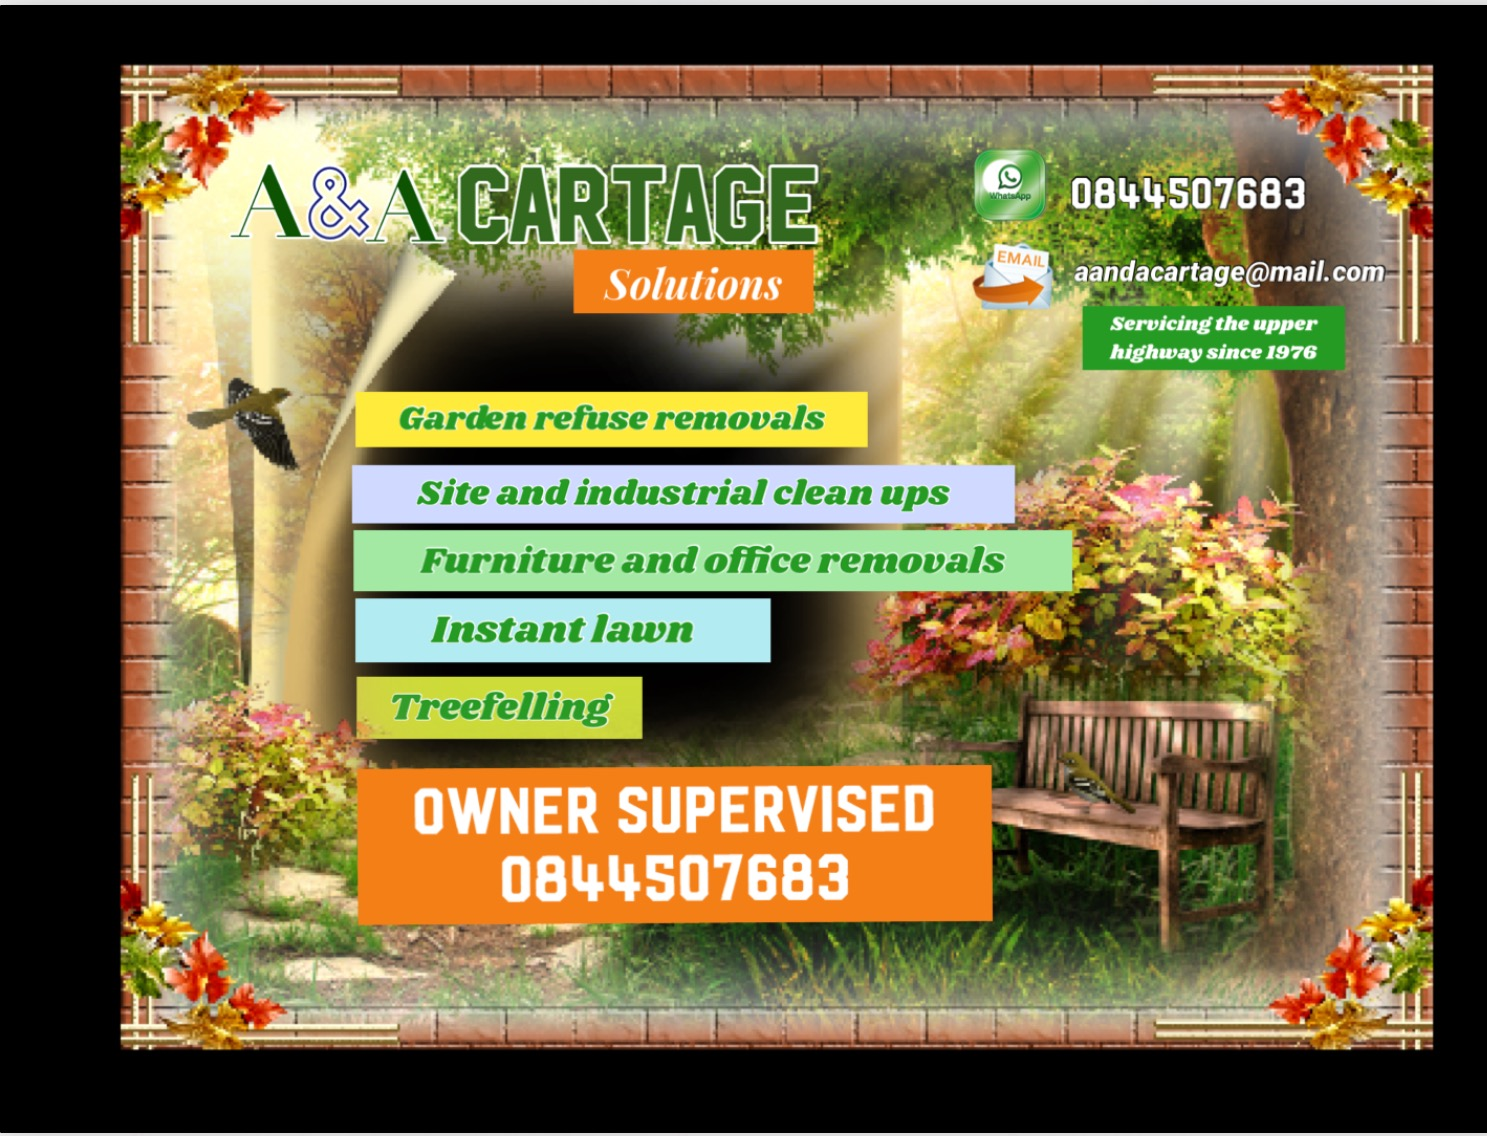 Refuse removals, tree felling and instant lawn